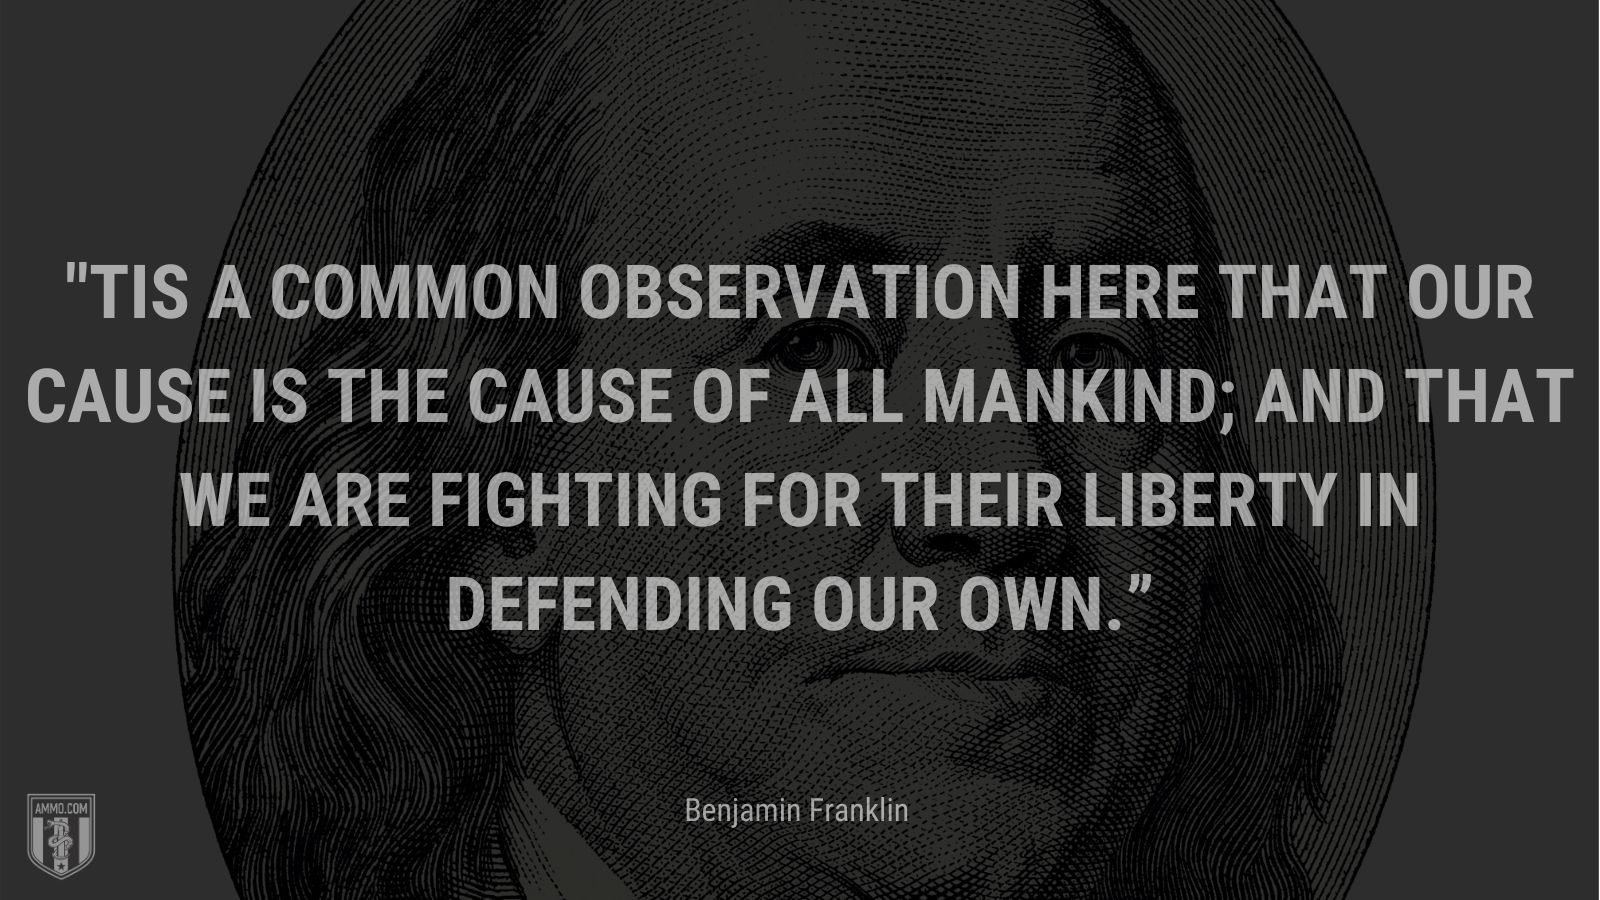 """""""'Tis a Common Observation here that our Cause is the Cause of all Mankind; and that we are fighting for their Liberty in defending our own."""" - Benjamin Franklin"""